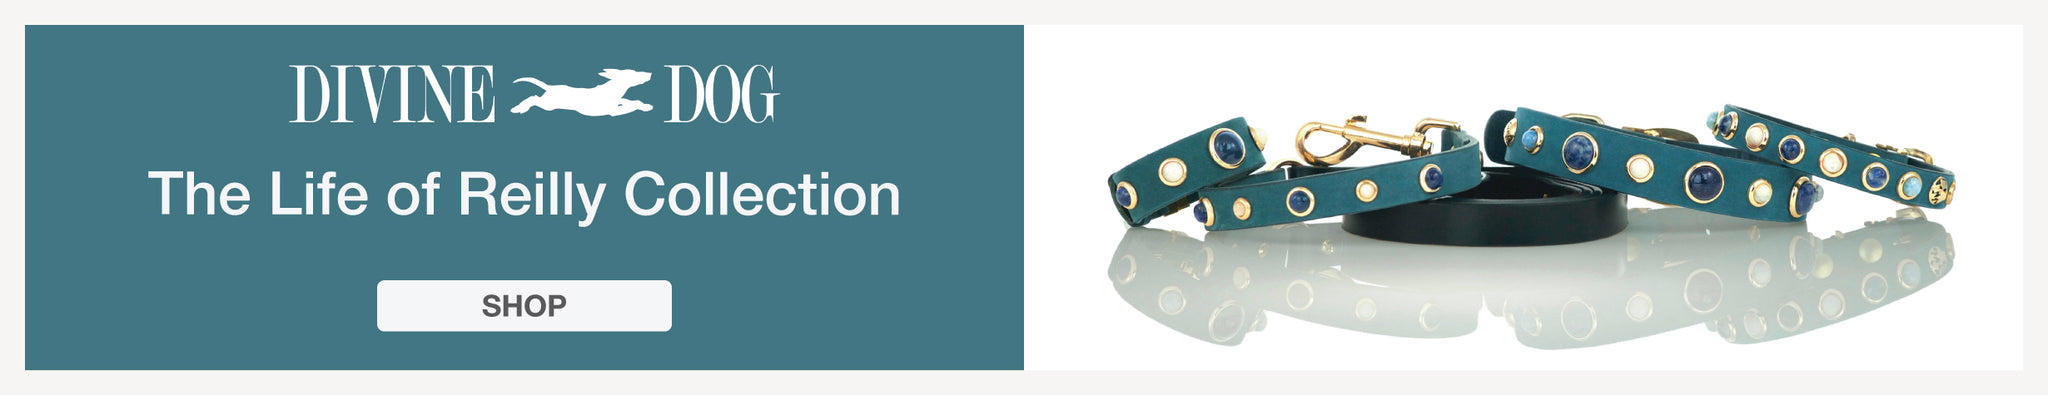 The Life of Reilly Collection of Leather Dog Collars with Gemstones